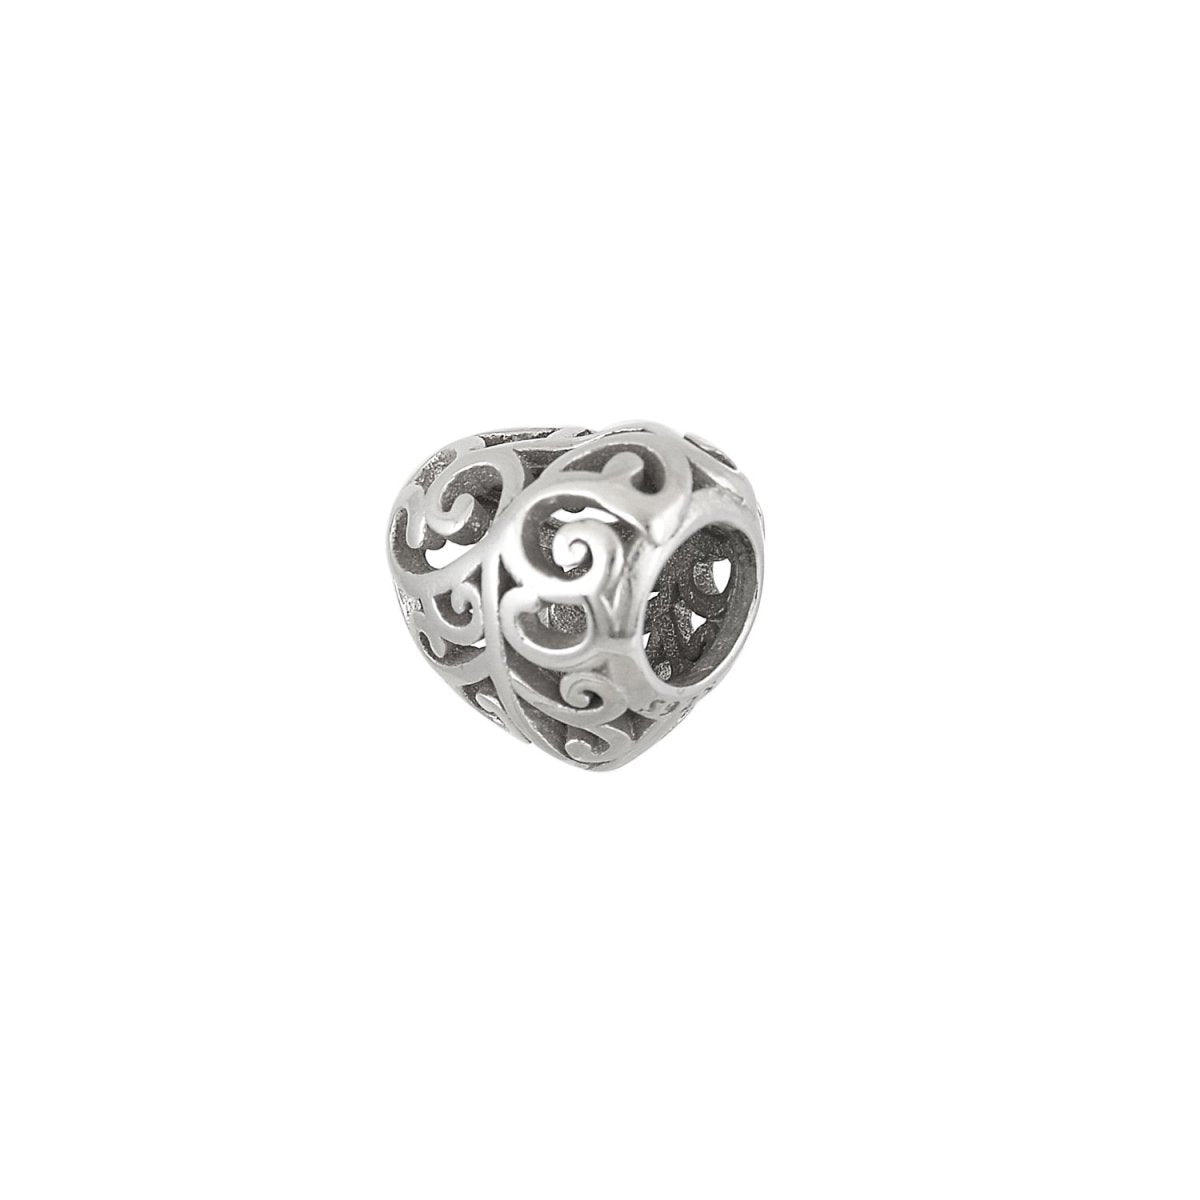 Pattern for Bracelet D044W Heart From Platinum Silver - Goldy Jewelry Store